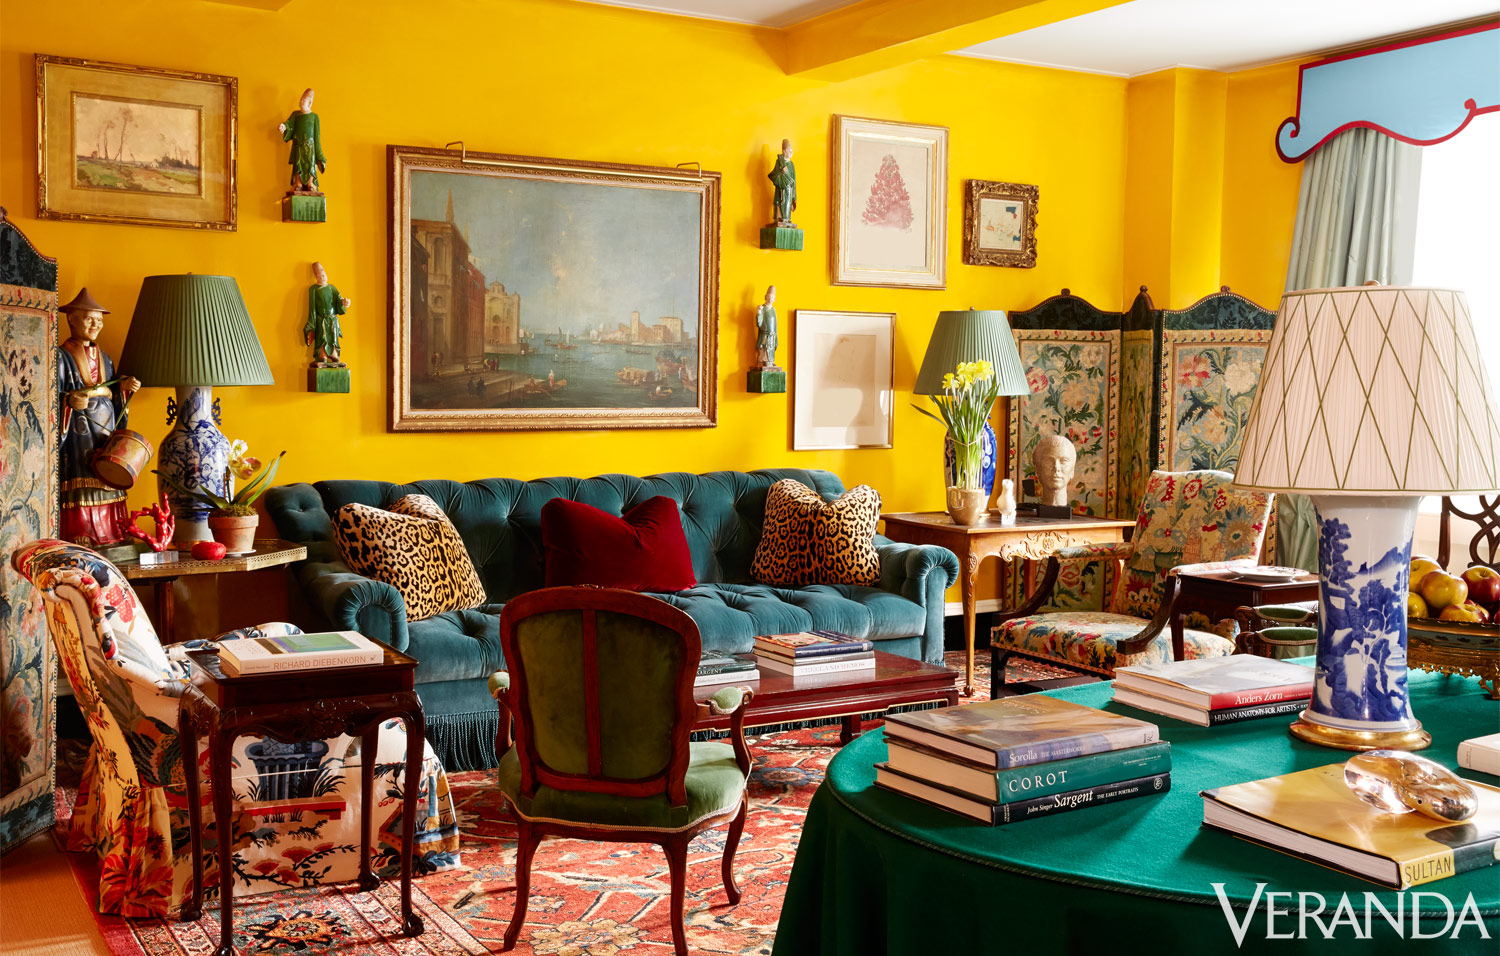 Miles redd designs a colorful manhattan apartment tour a for Home decor yellow walls